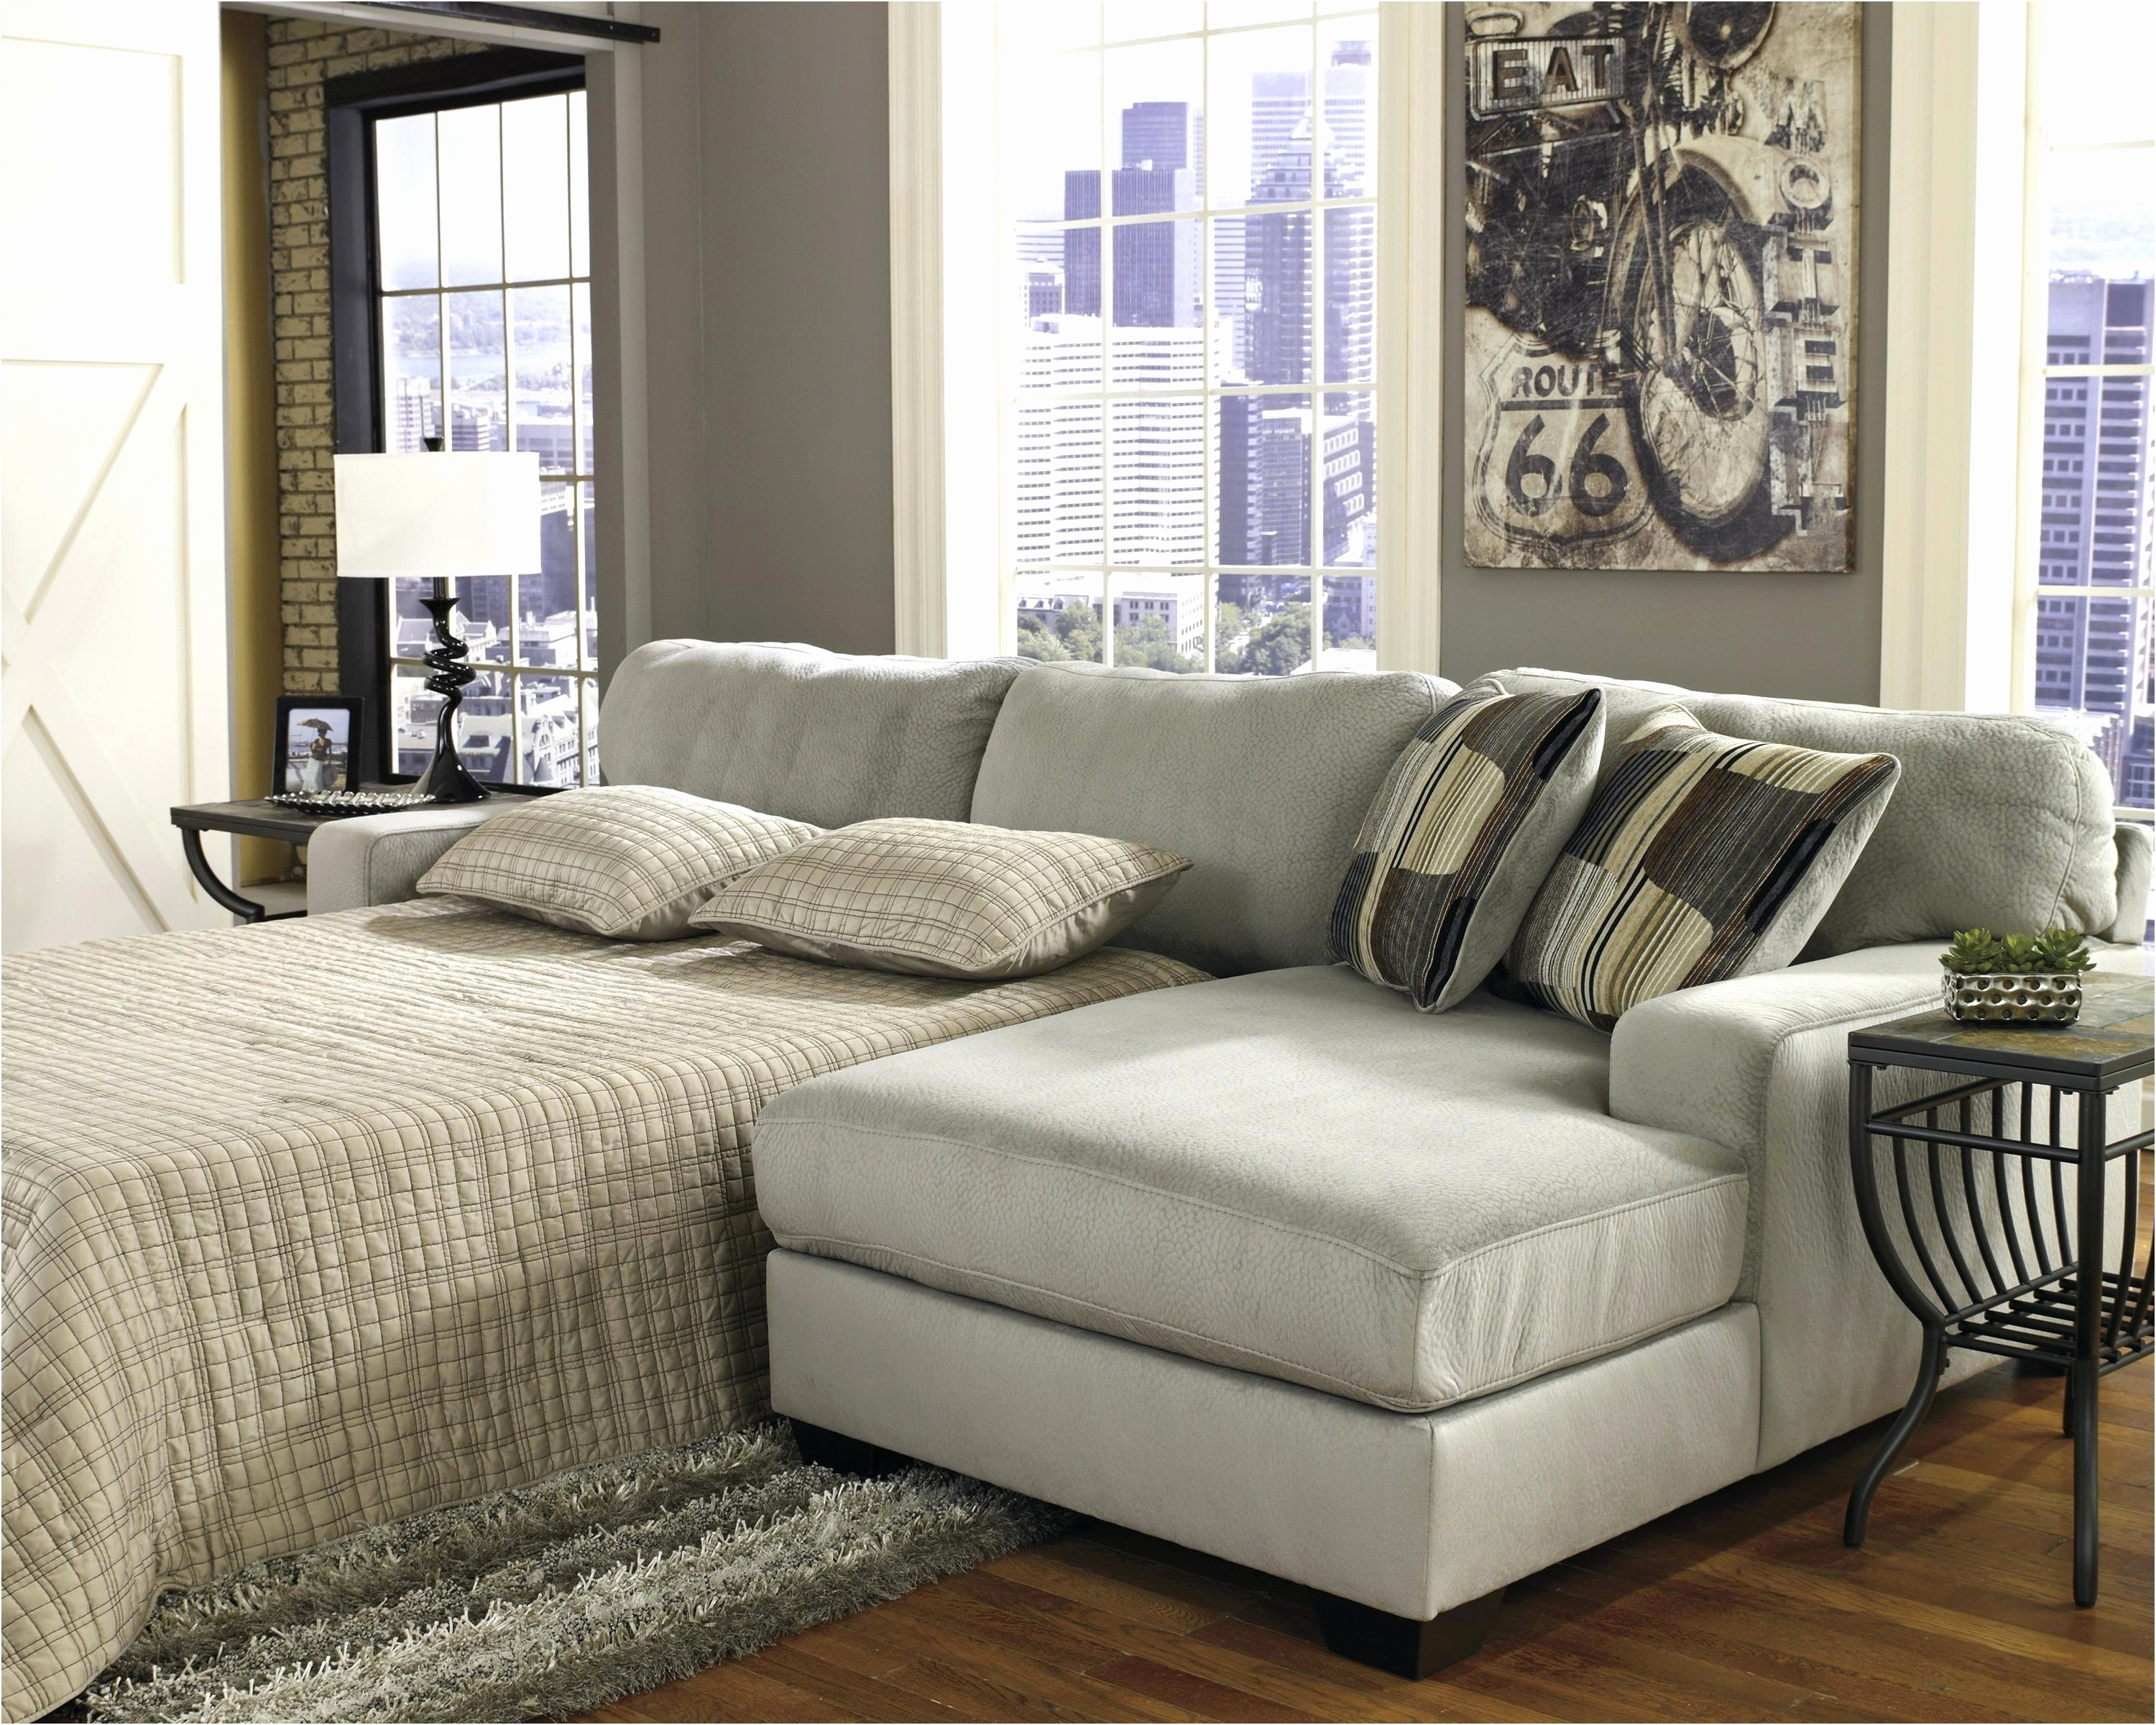 Luxury Oversized Comfy Sectional 2018 – Couches Ideas Intended For Oversized Sectional Sofas (View 9 of 10)